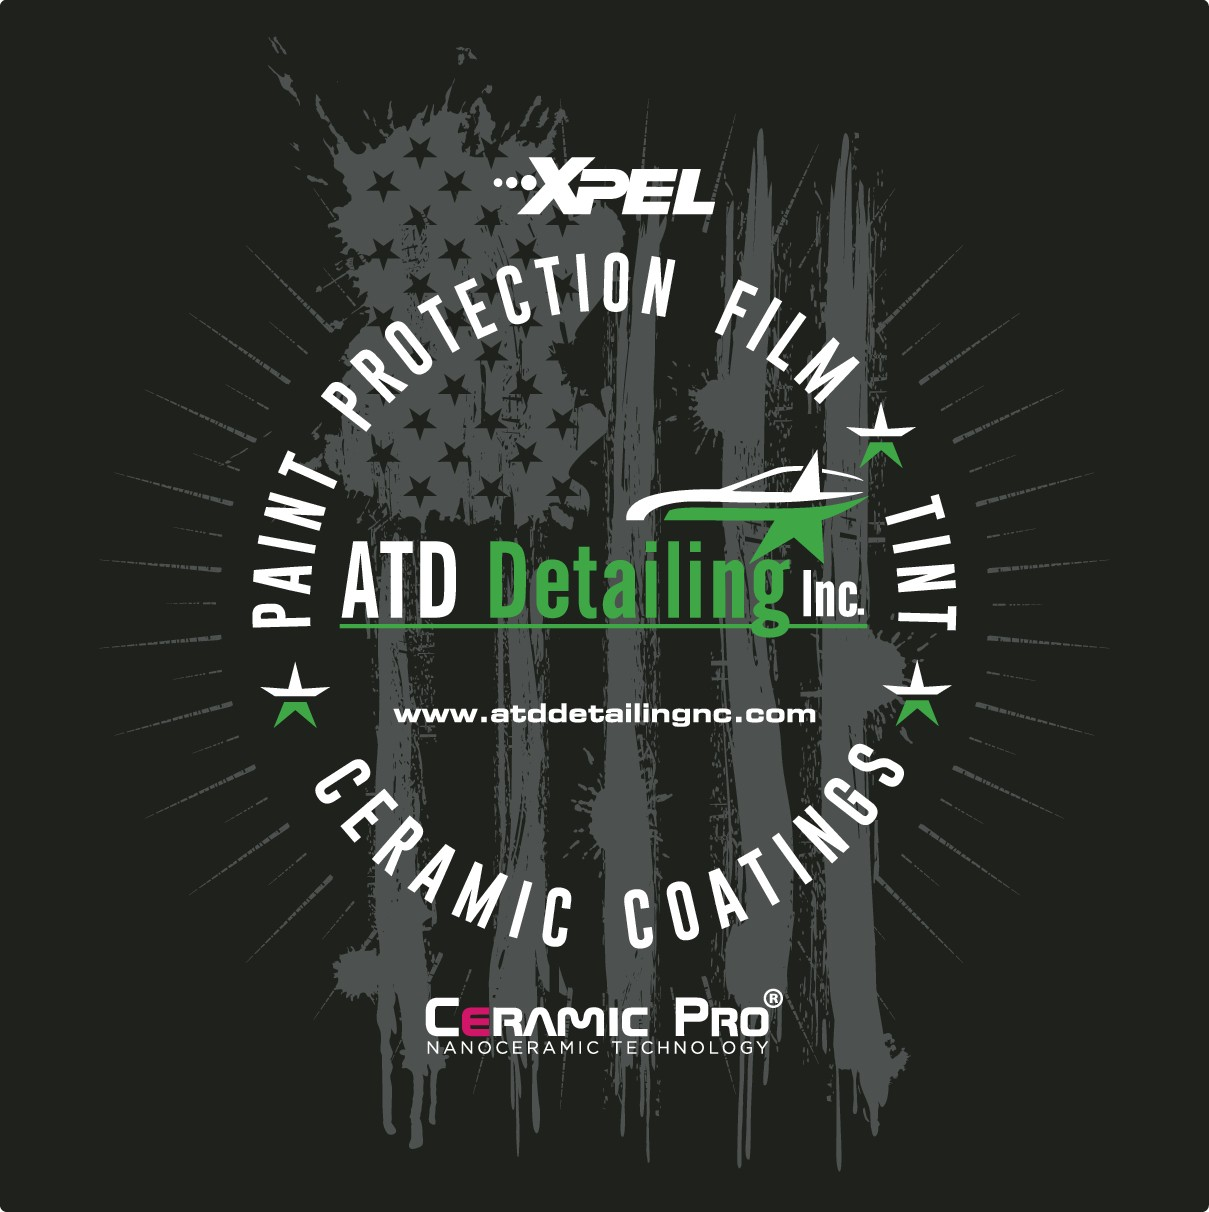 ATD Detailing Inc swag